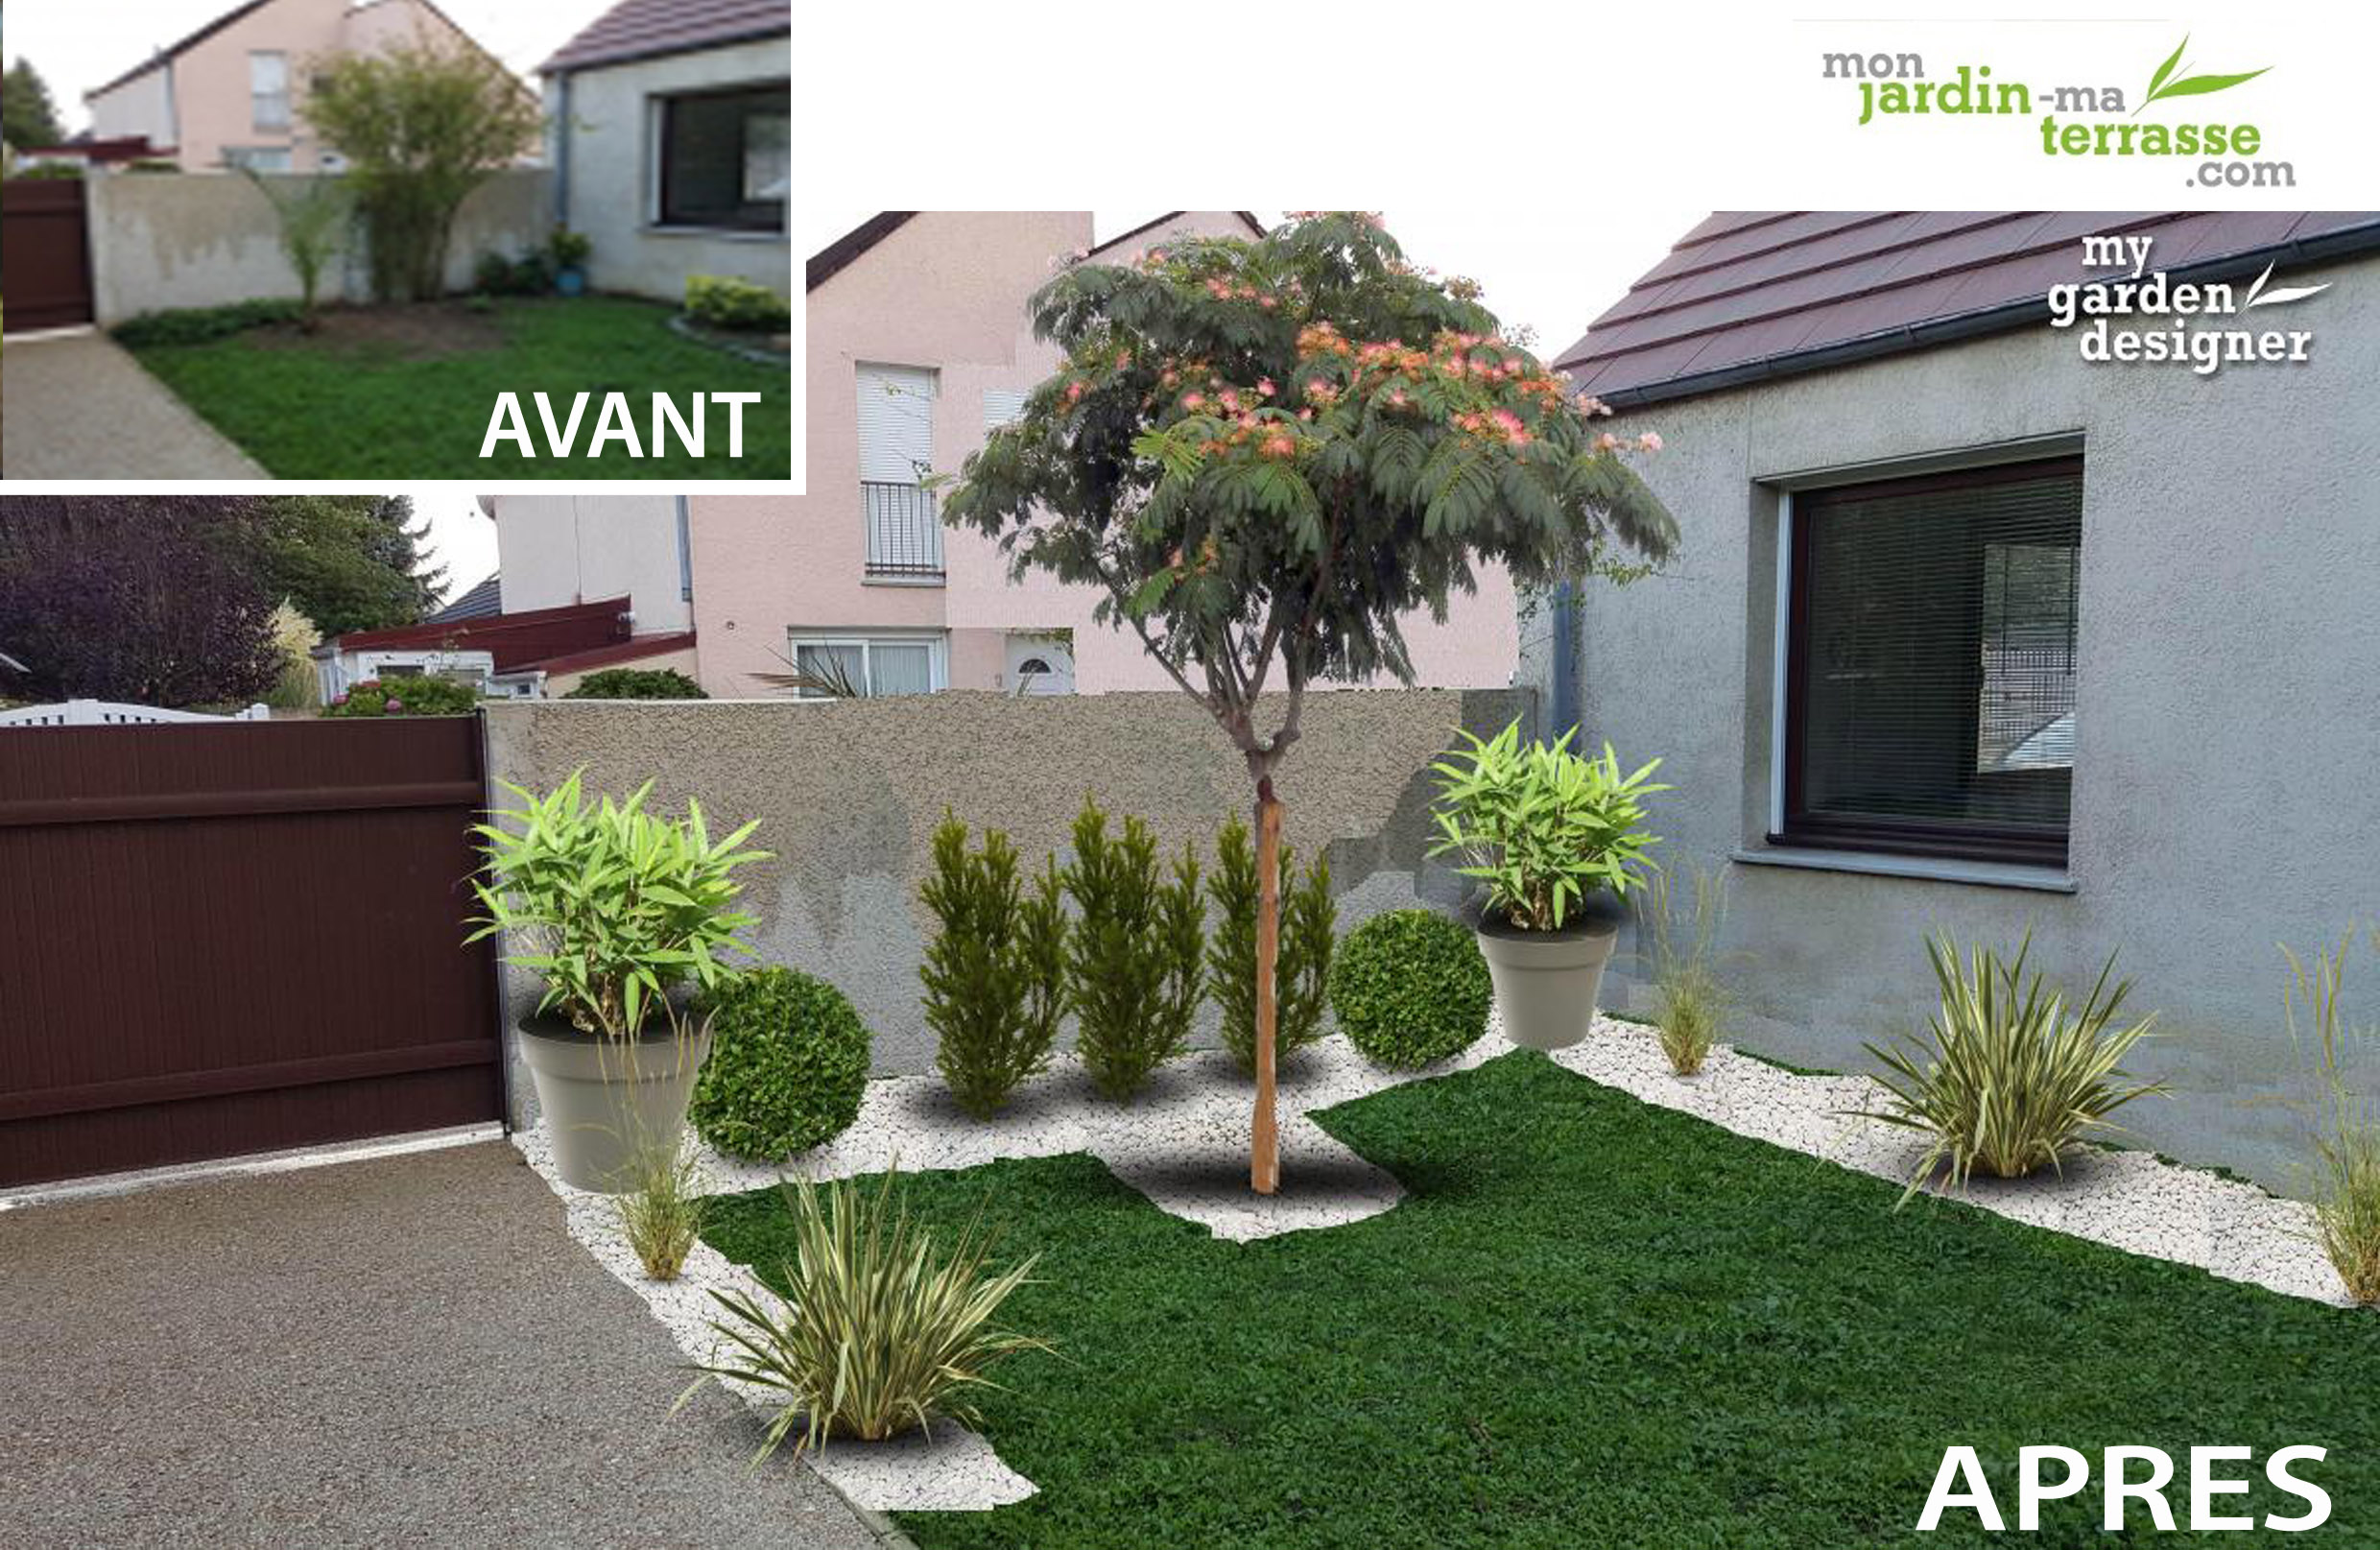 Am nager un petit jardin de 30m monjardin for Amenagement entree jardin